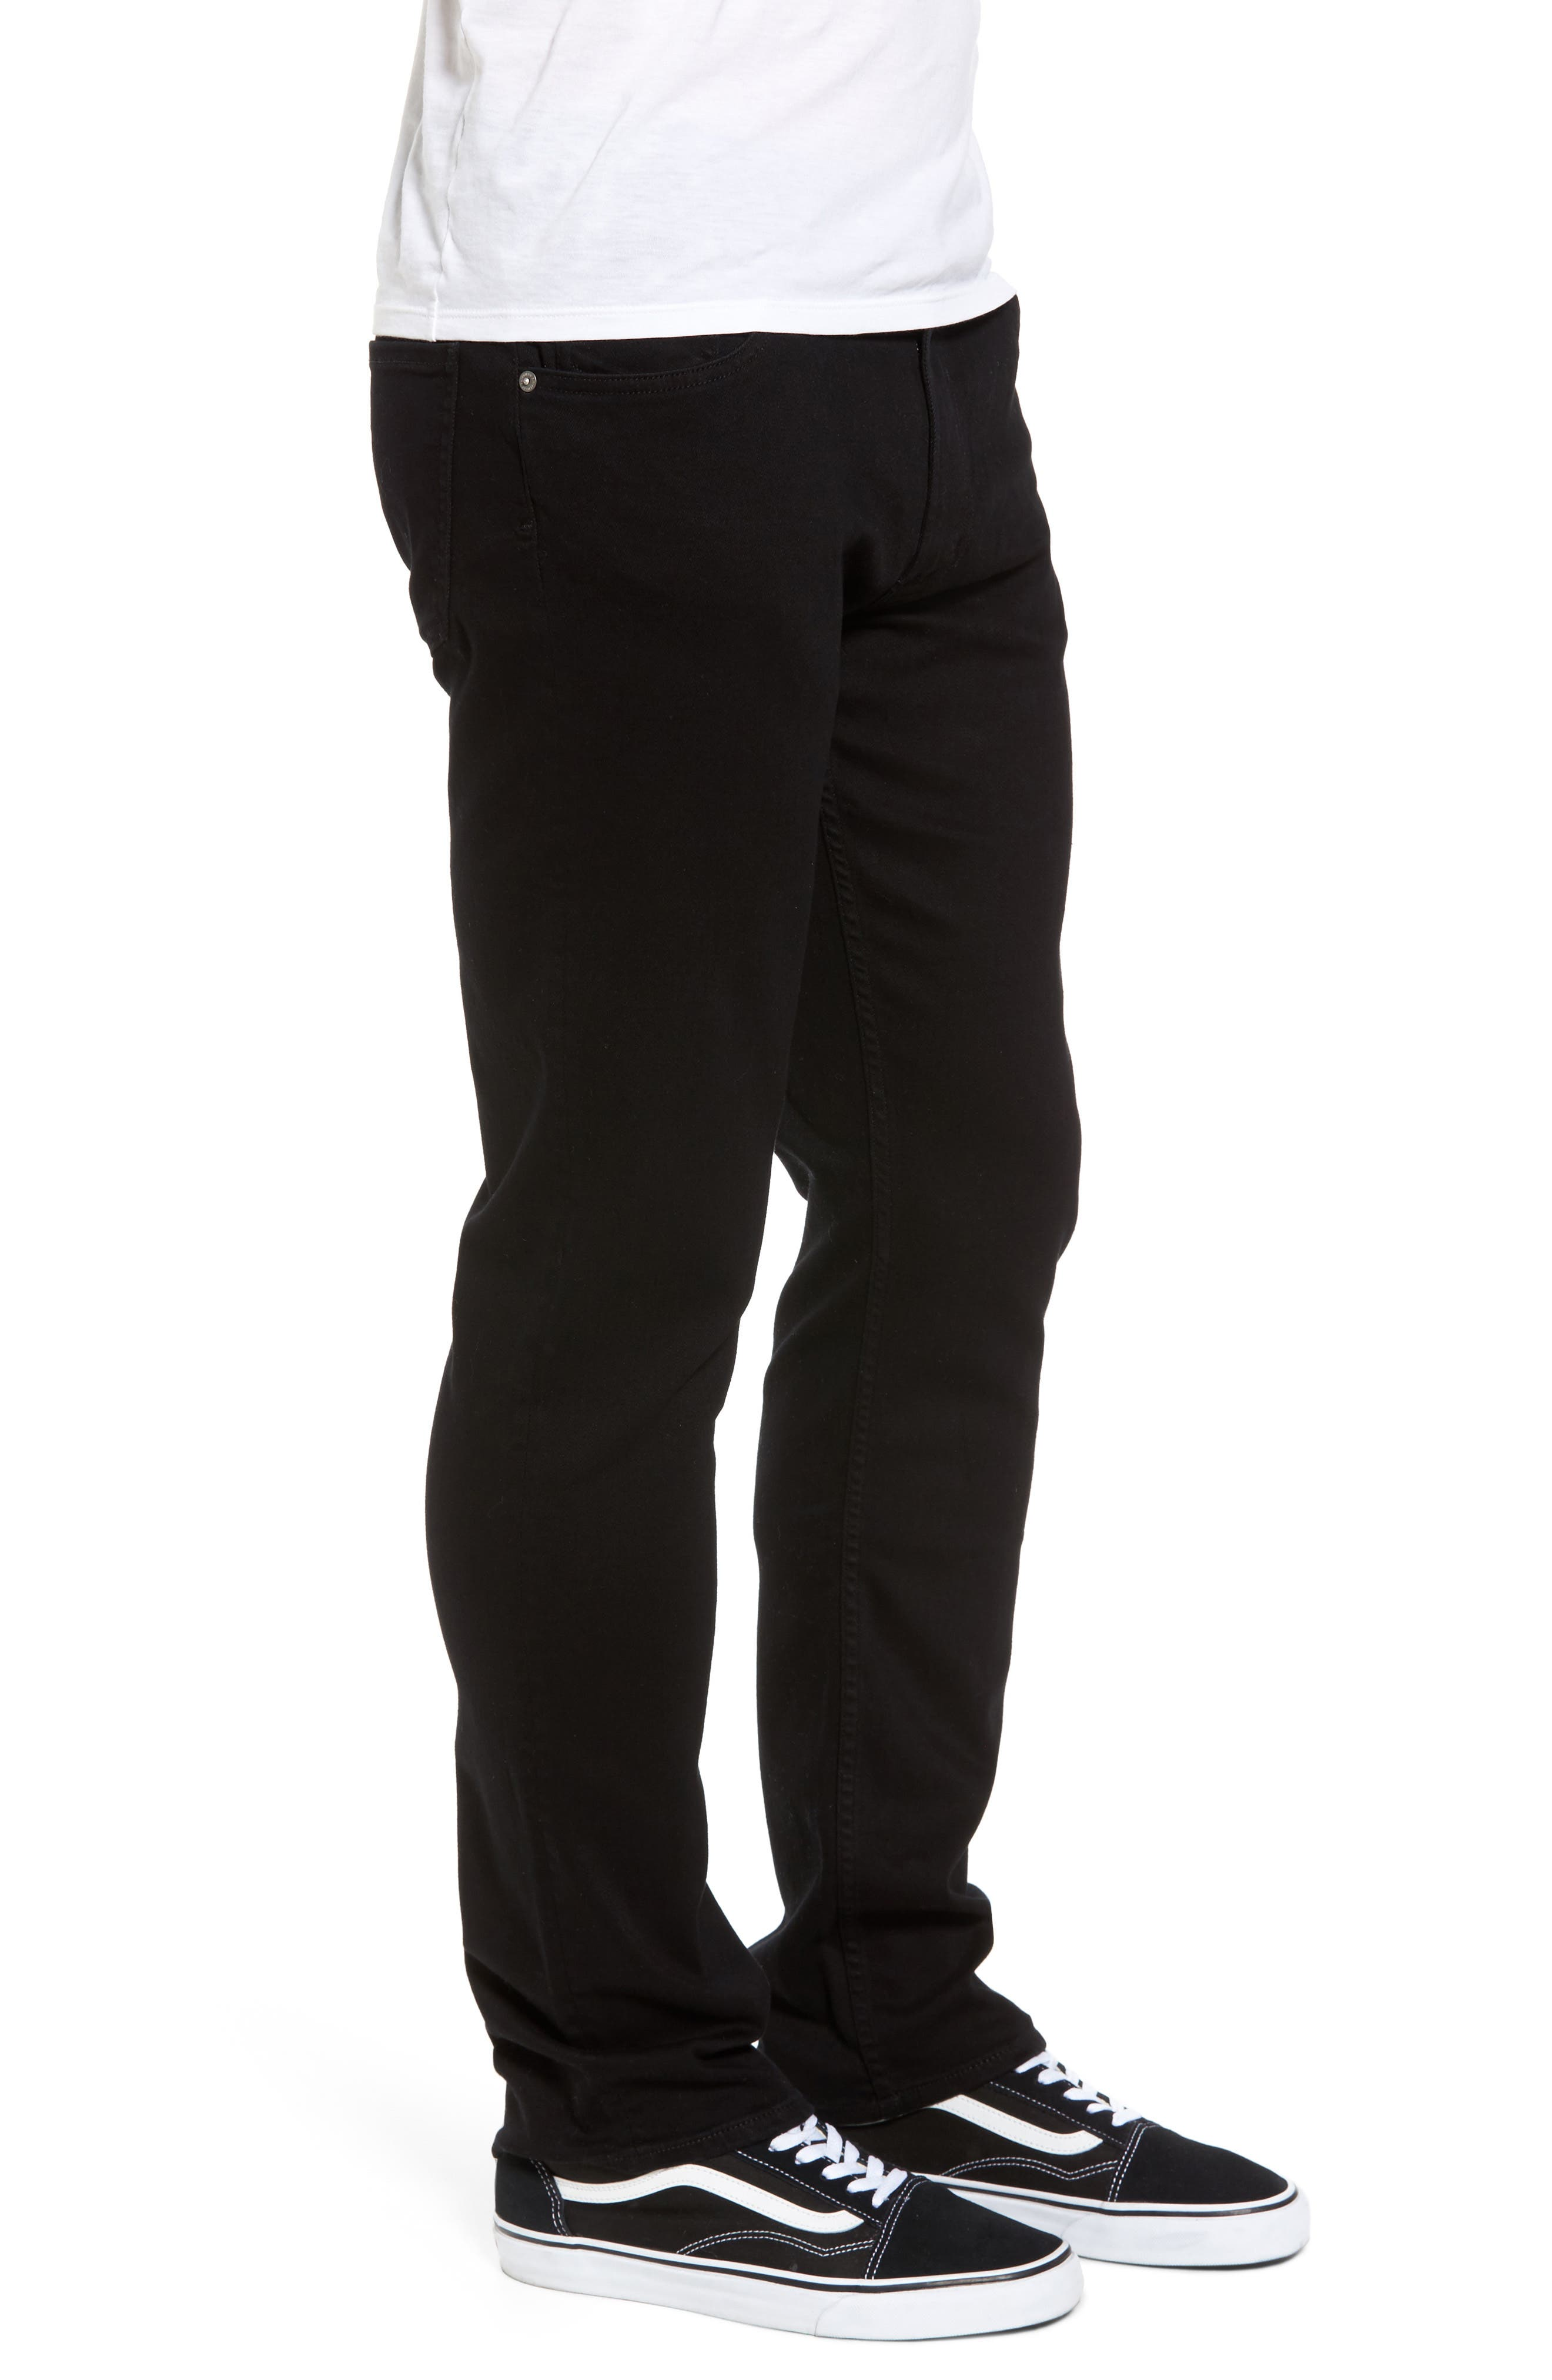 Bowery Slim Fit Jeans,                             Alternate thumbnail 3, color,                             007